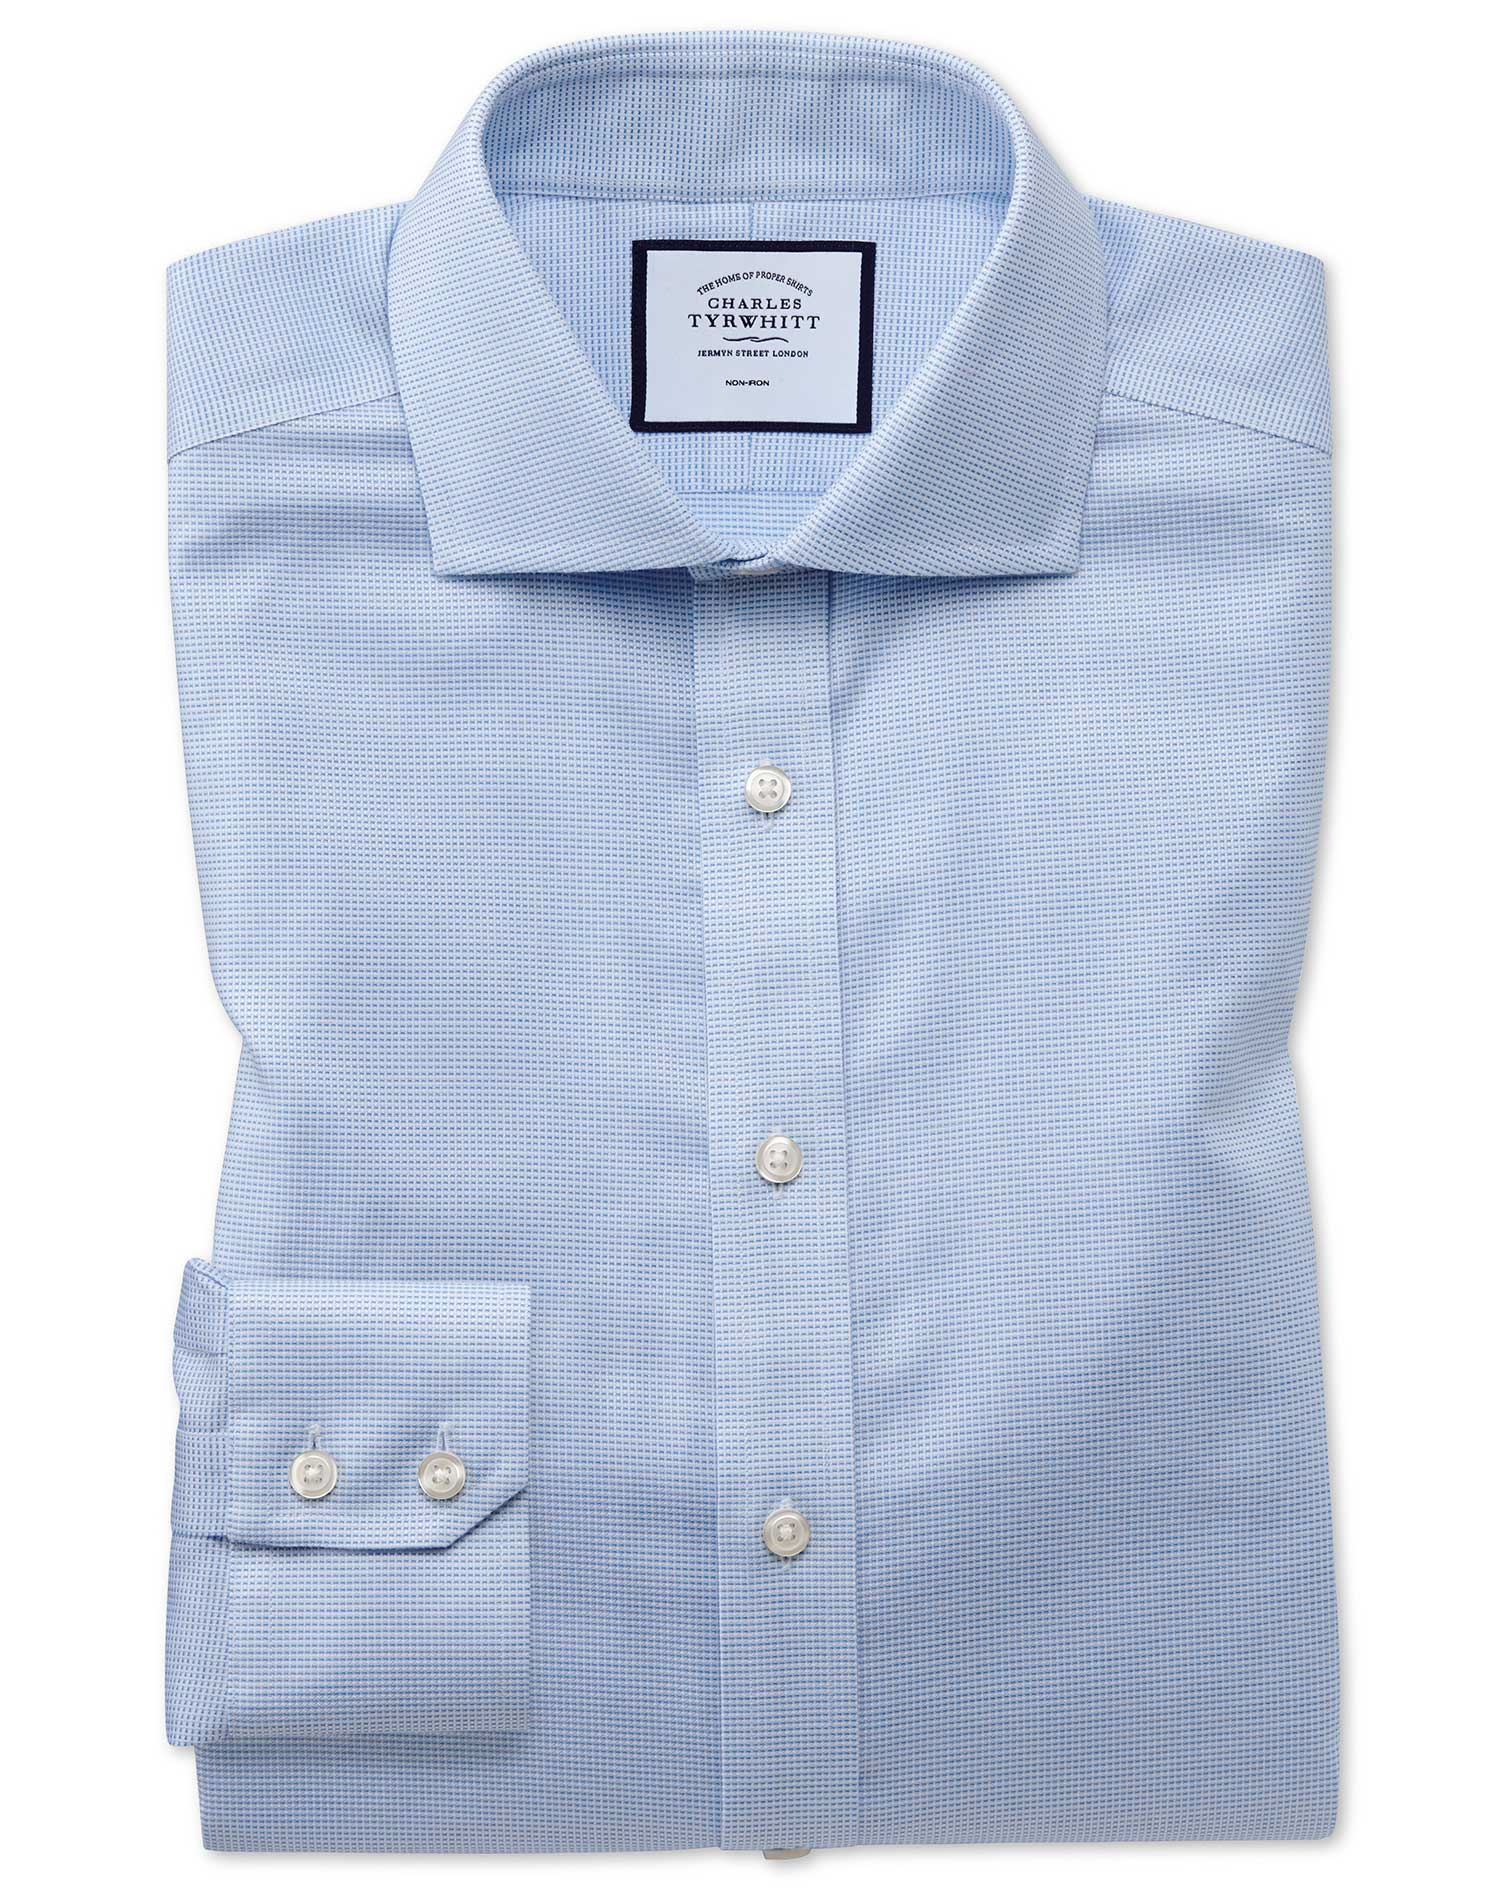 Slim Fit Non-Iron Cotton Stretch Oxford Sky Blue Formal Shirt Single Cuff Size 15.5/33 by Charles Ty